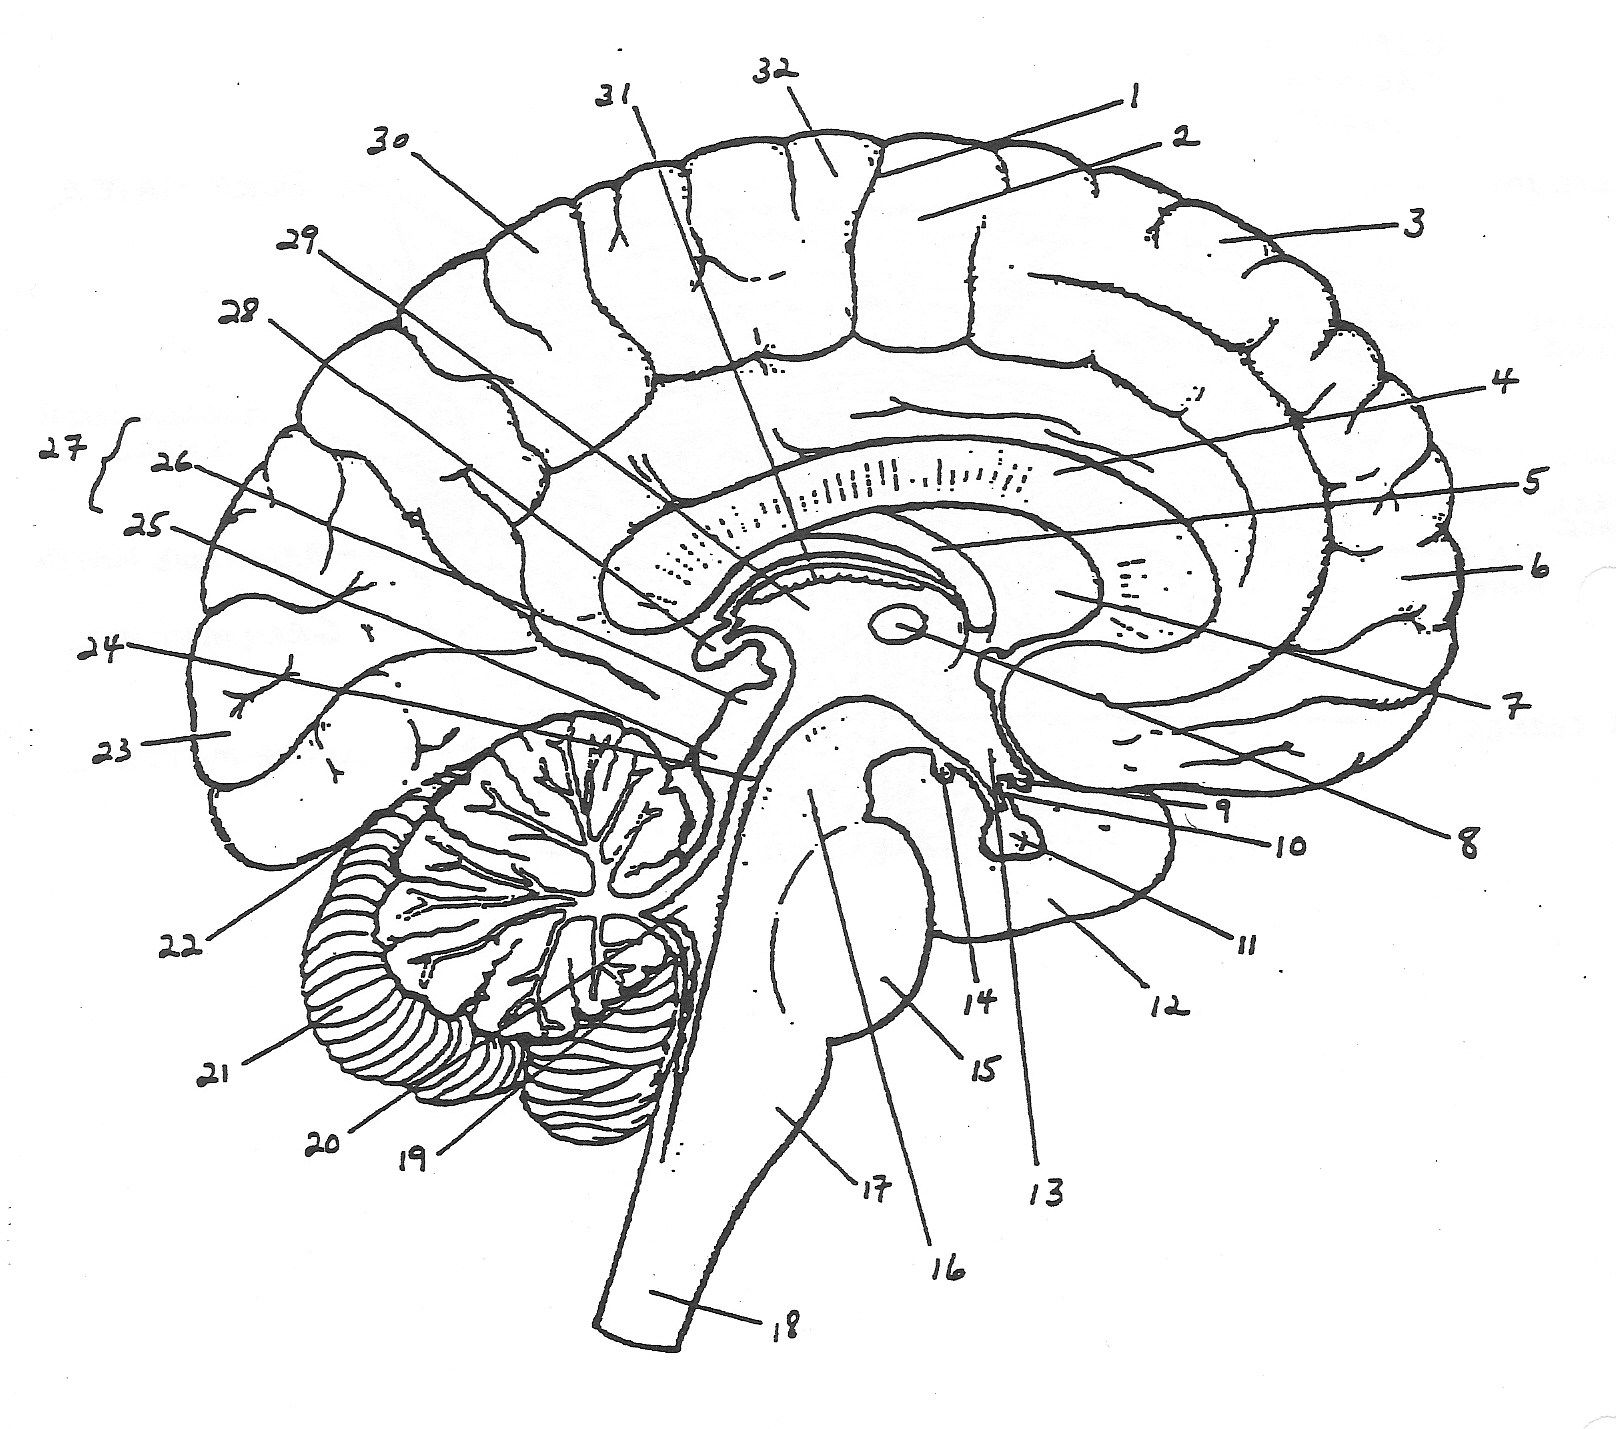 Blank Brain Diagram | human body anatomy | Brain diagram ...